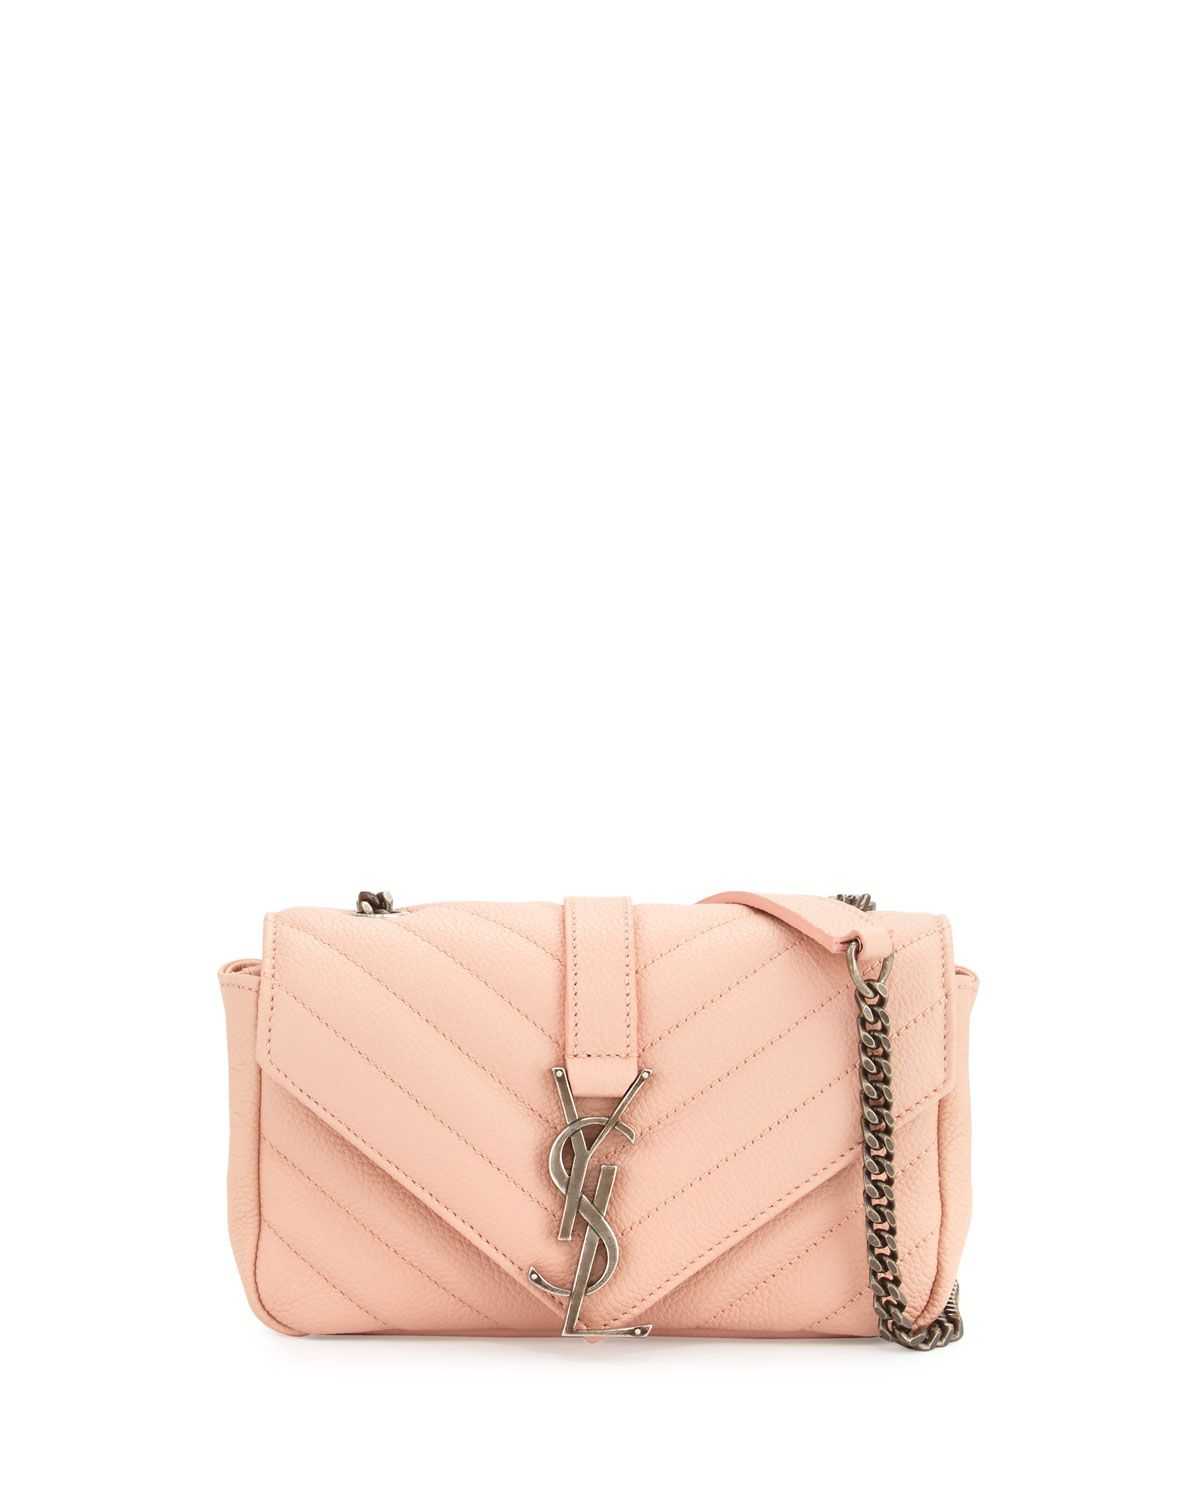 1f2f3eabaefd Yves Saint Laurent Monogram Baby Chain Crossbody Bag, Pale Pink ...